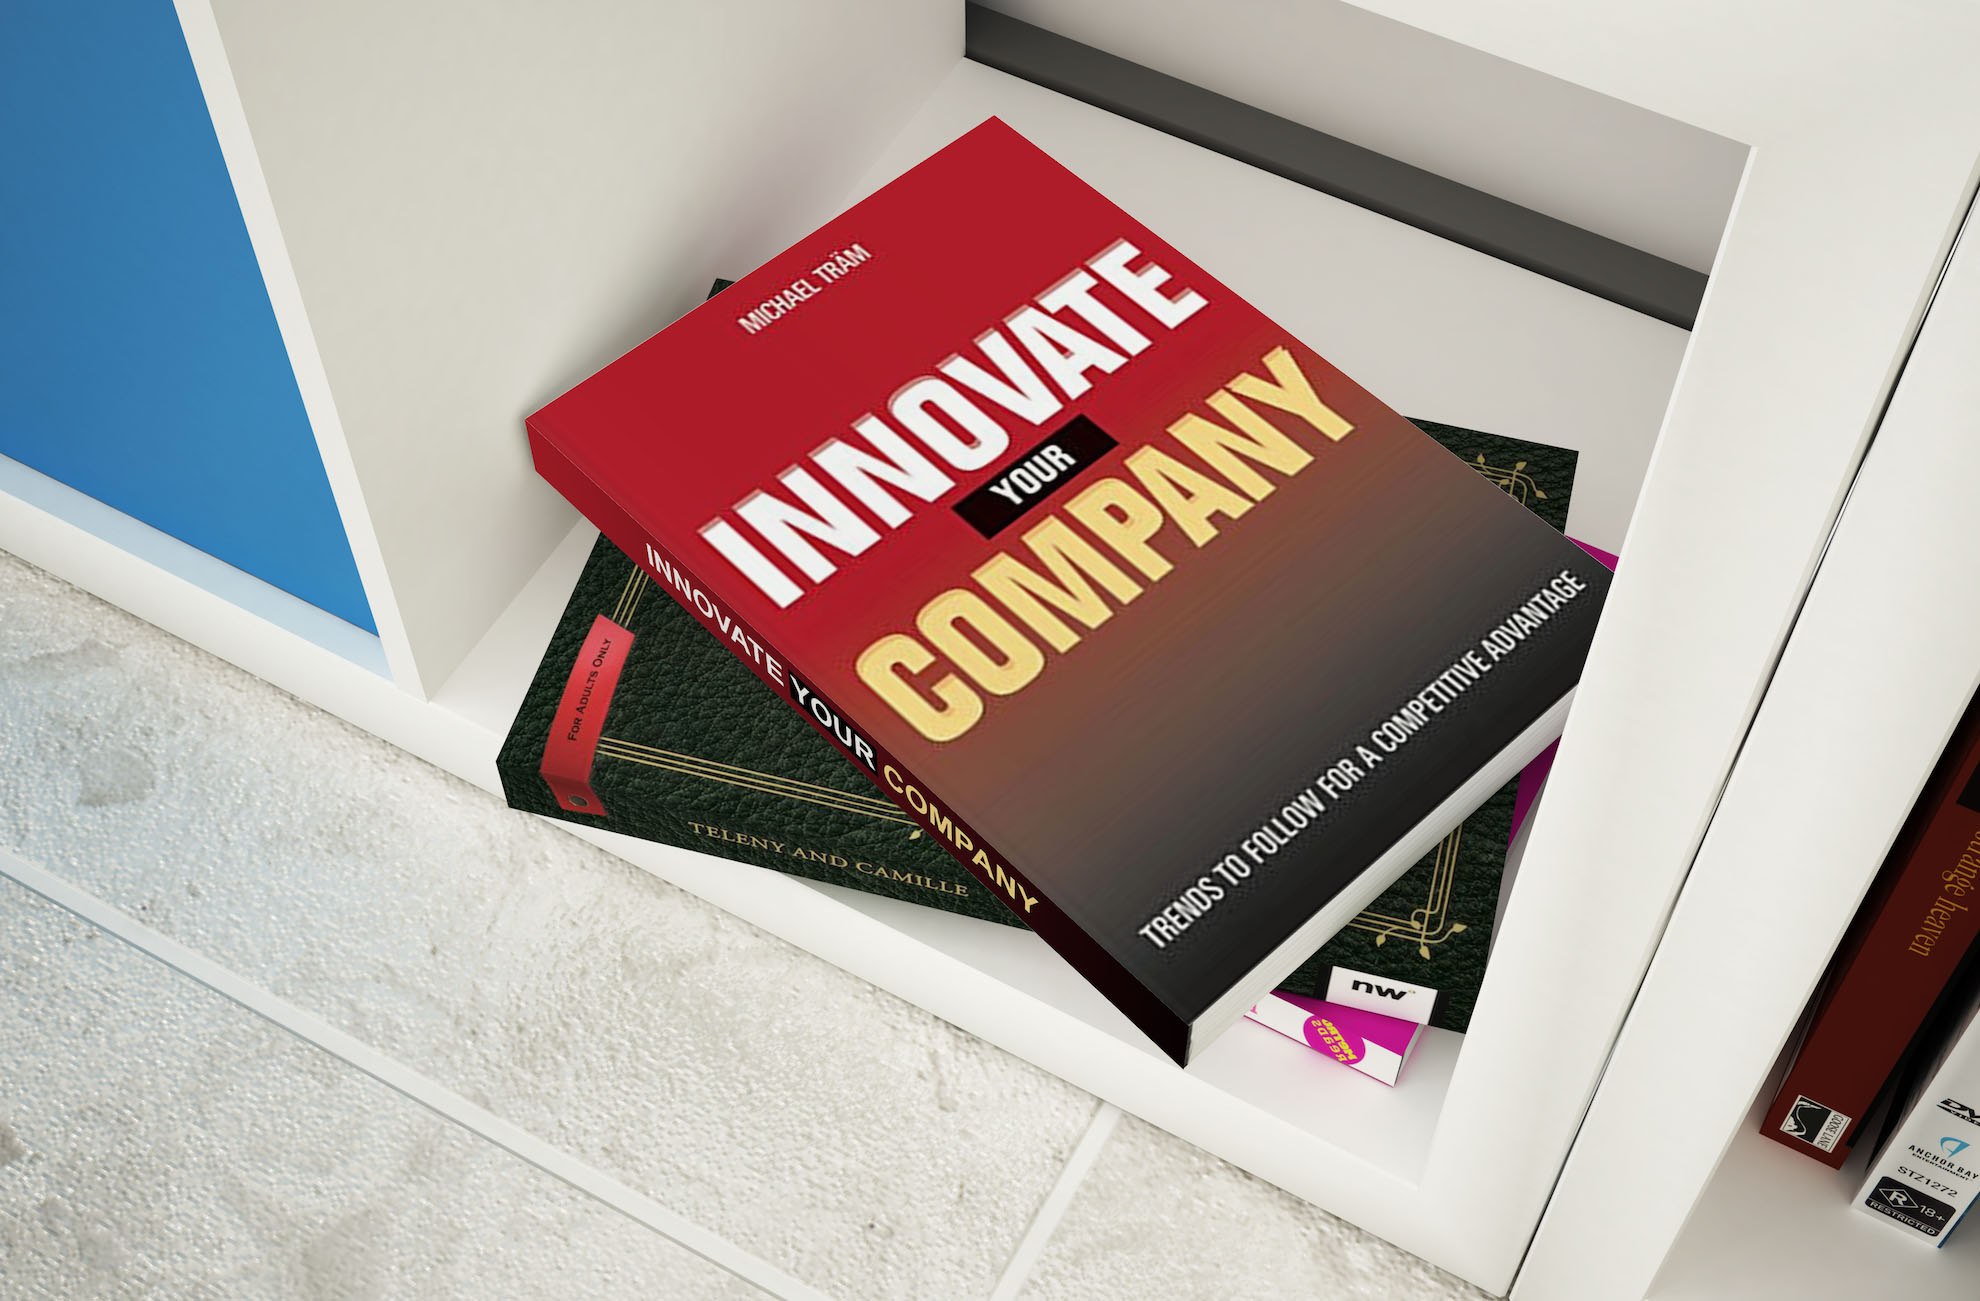 Innovate Your Company